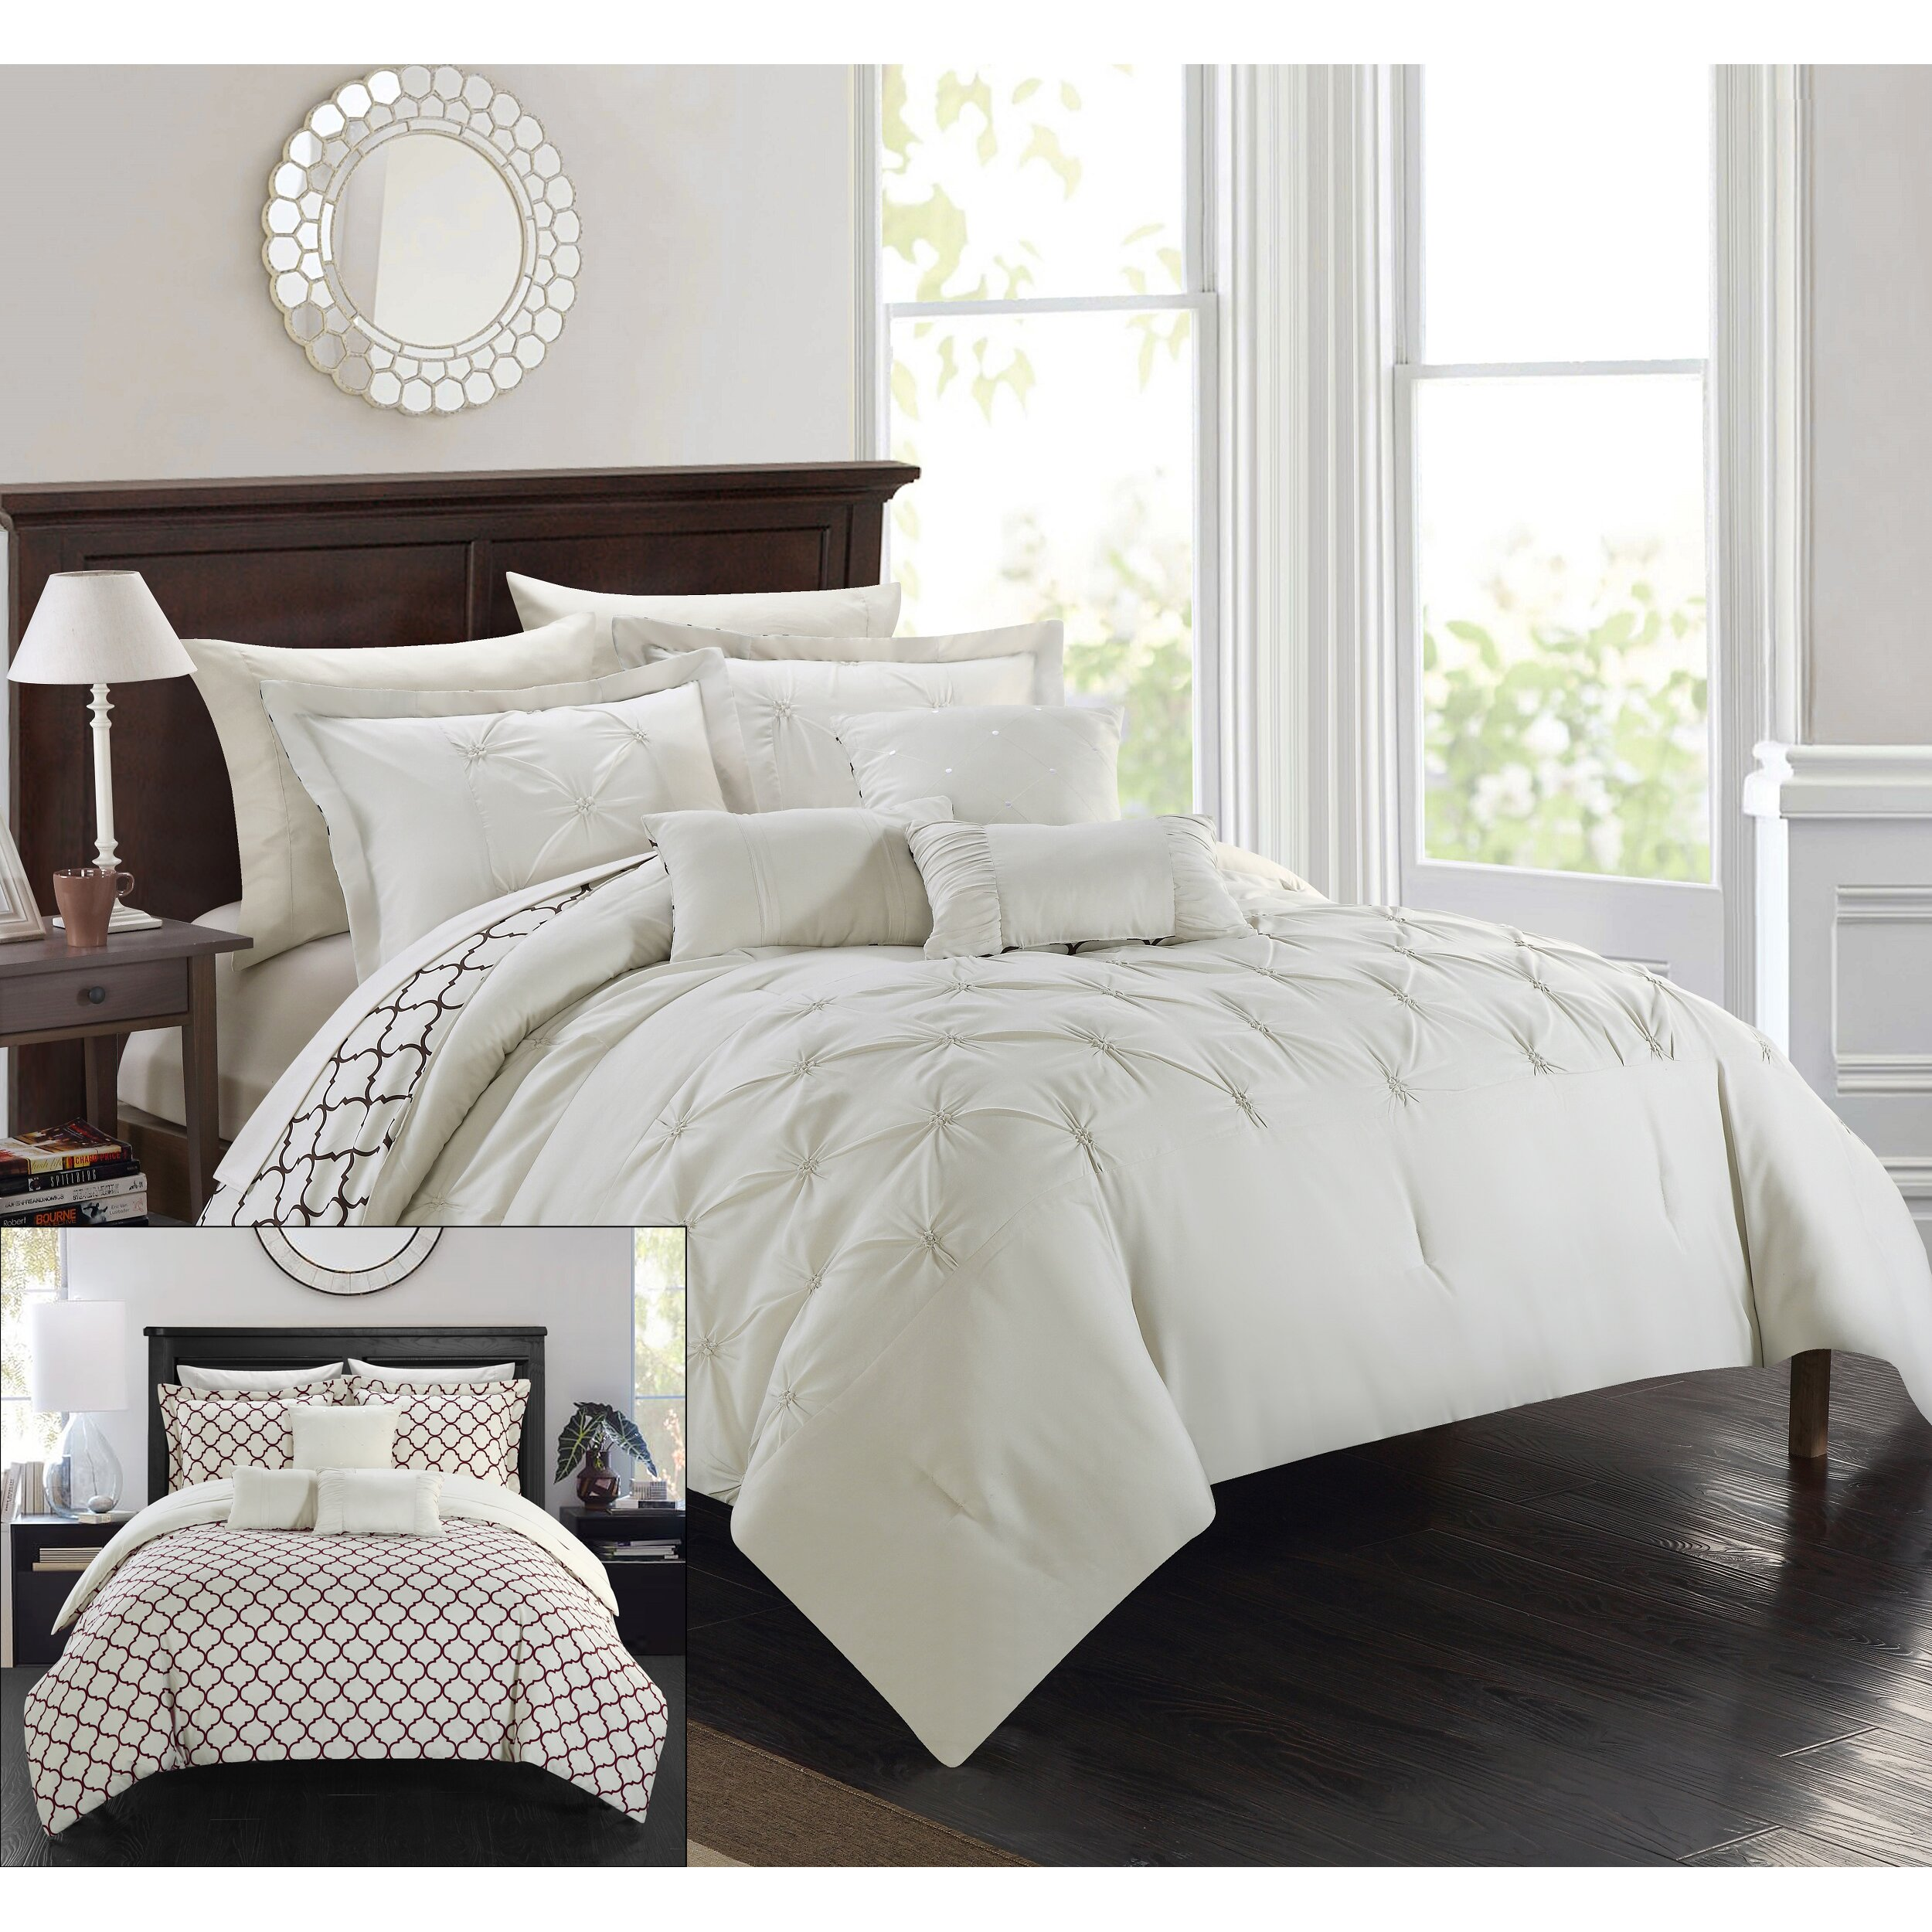 Chic Home Design Sheets Chic Home Bedding Chic Home Black